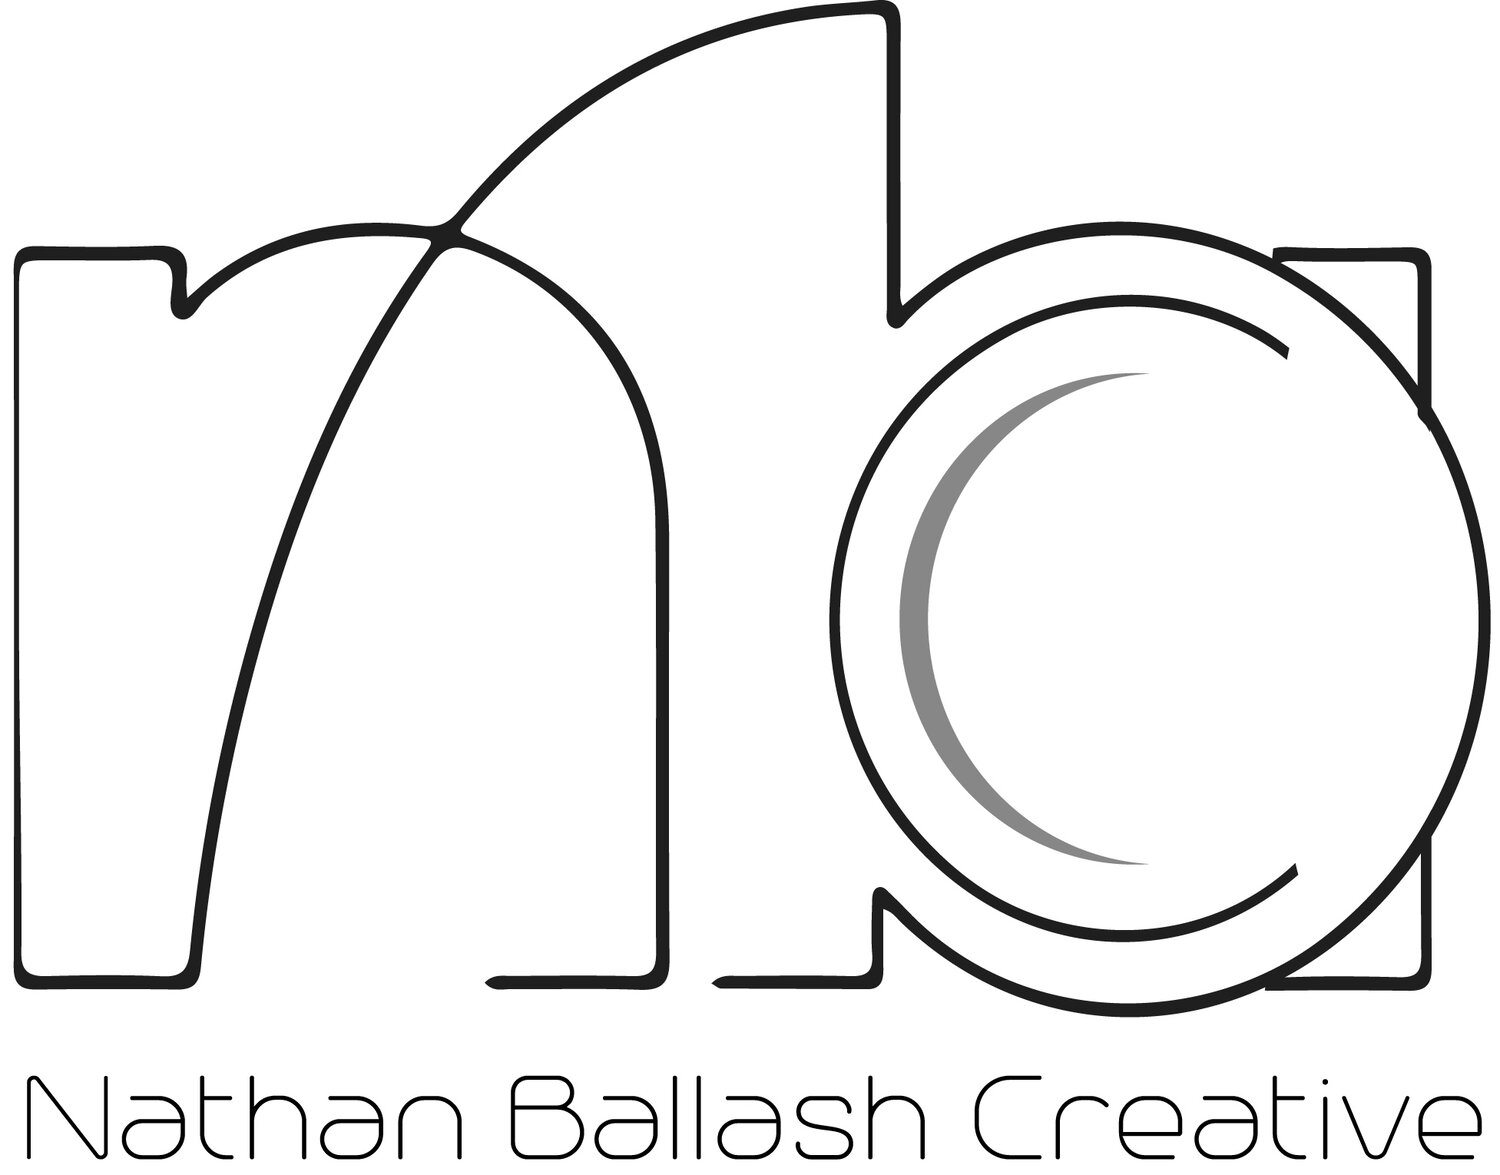 Nathan Ballash Creative